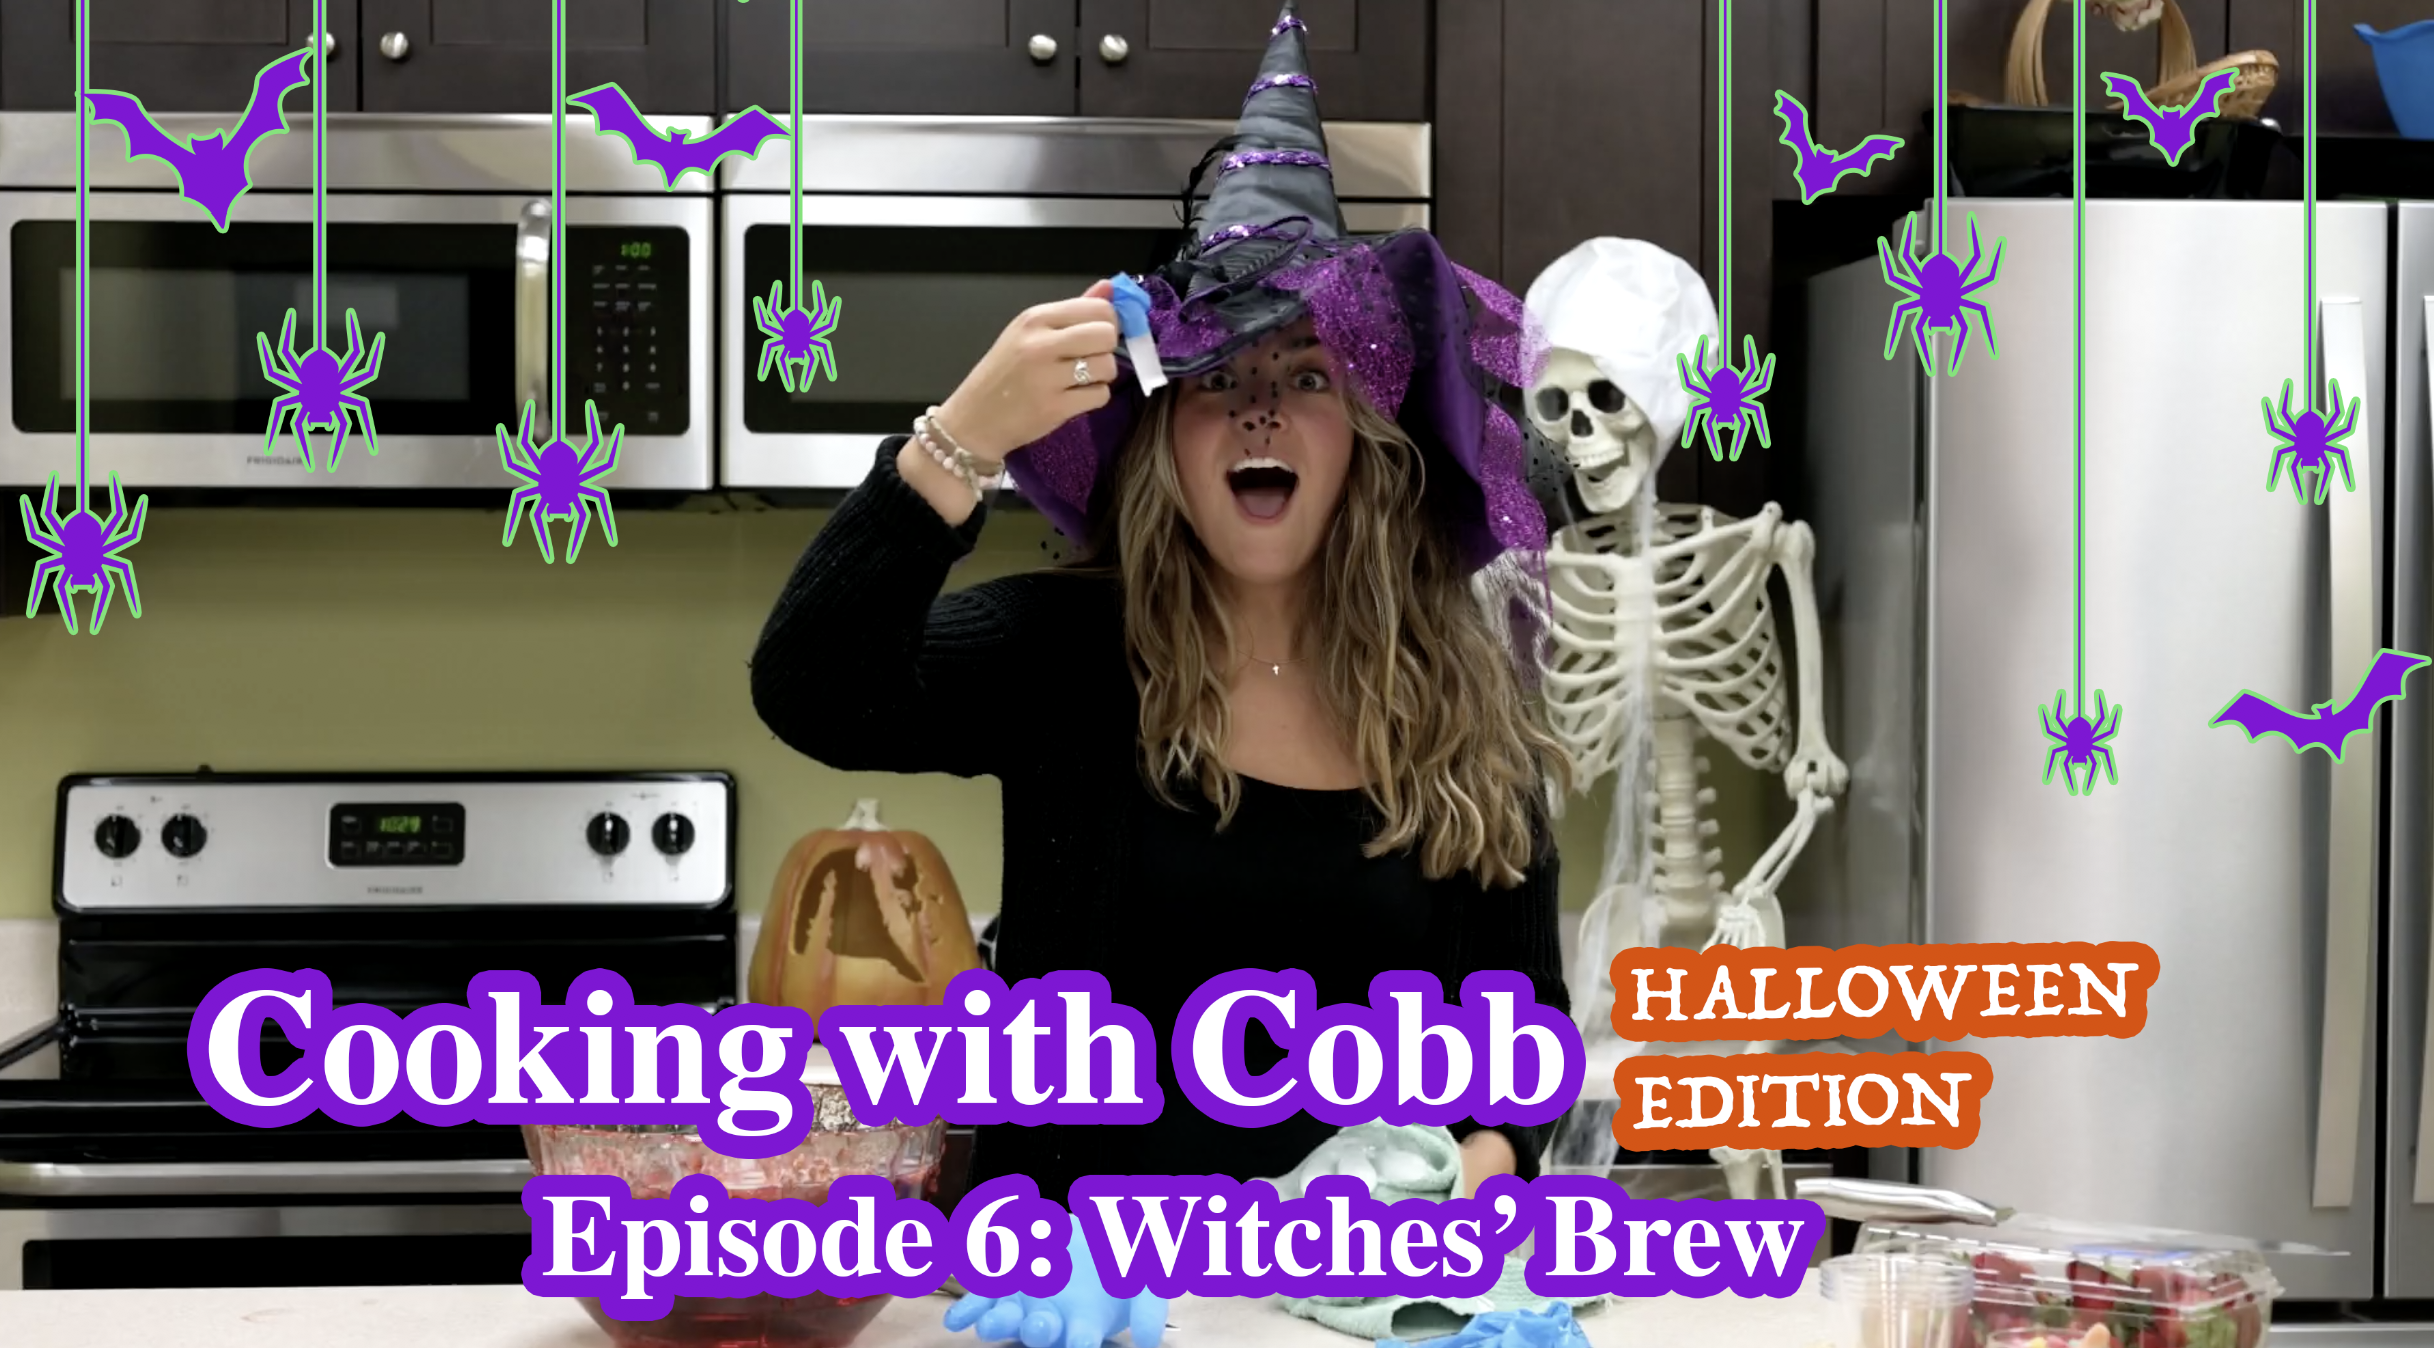 Cooking with Cobb - Episode 06 - Halloween